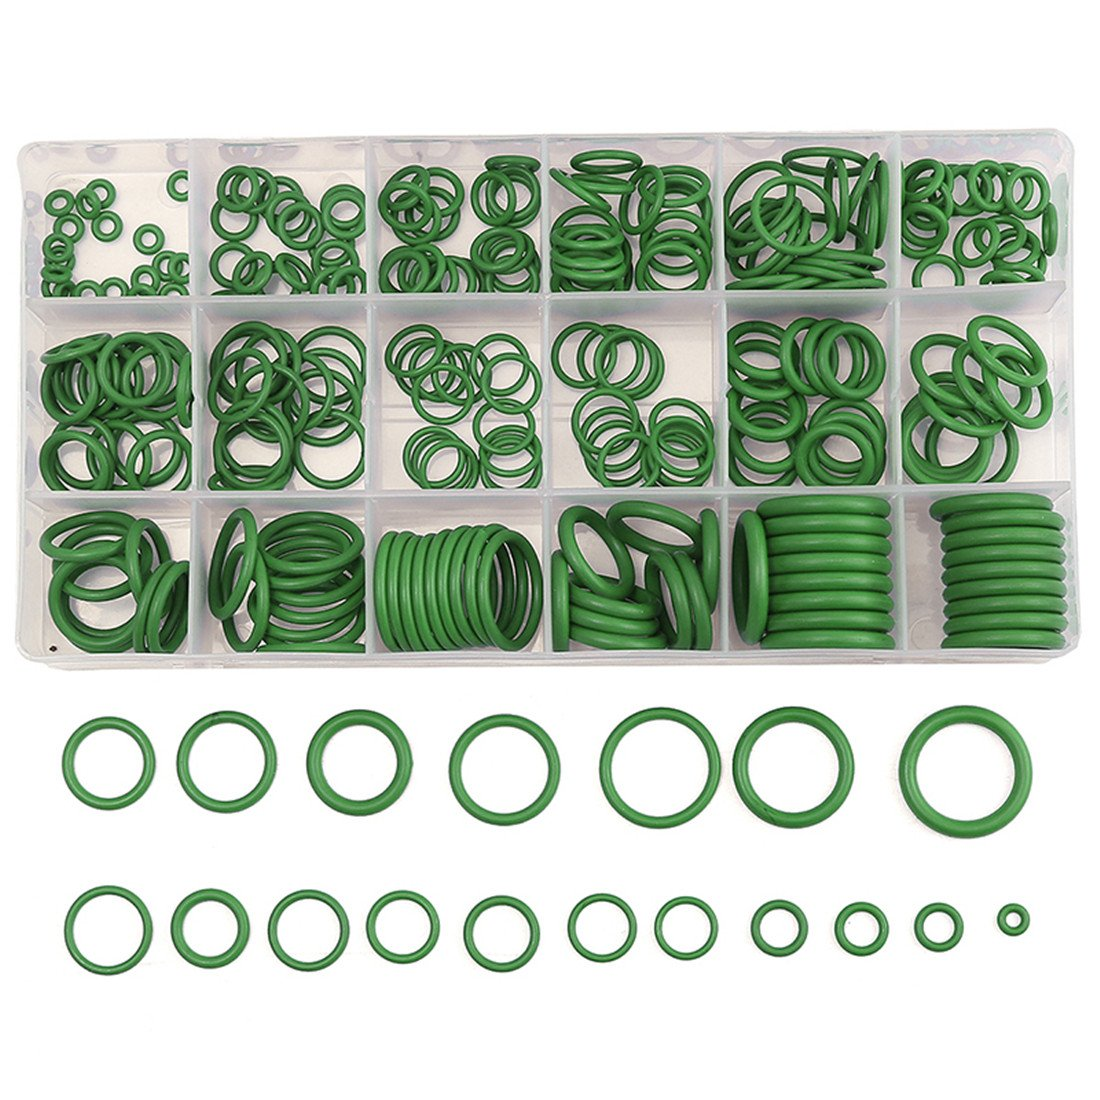 FEZZ 270pcs Rubber O Ring Sealing Gasket Car Auto Repair Tools Air Conditioning Refrigerant Ring Washer Seal Assortment Set for plumbing